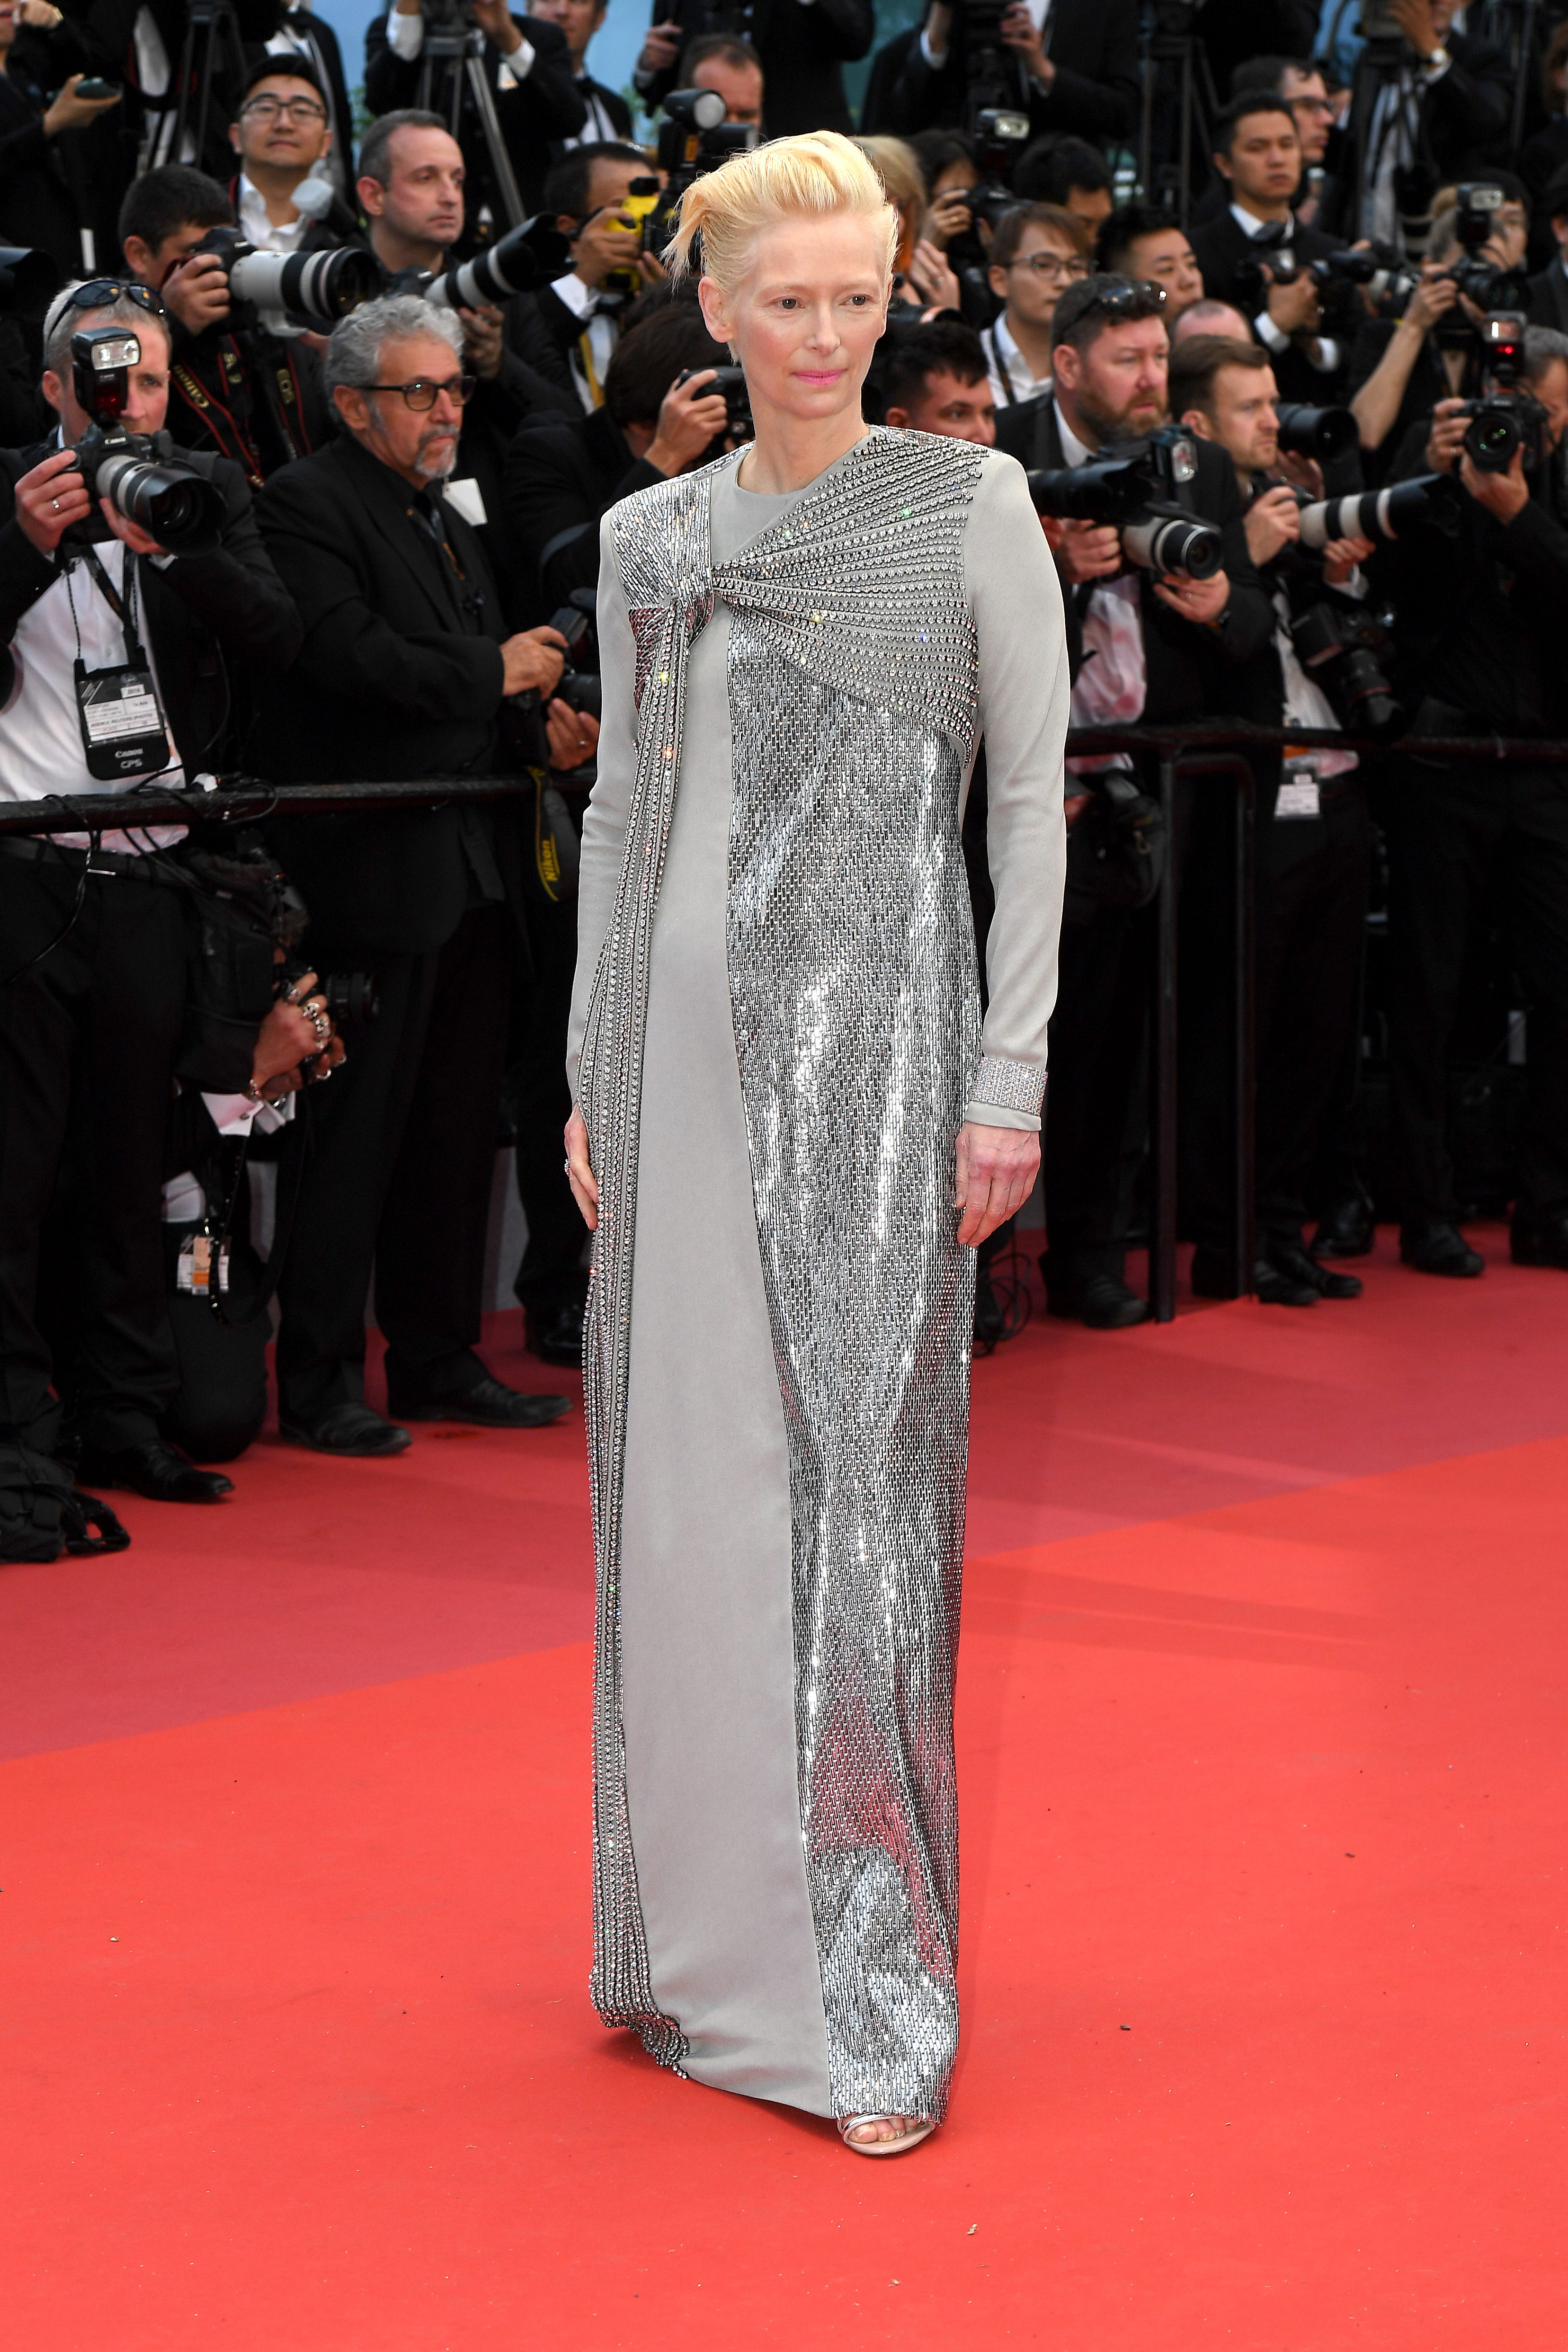 Cannes Fashion Is At Its Prime — Here Are The Best Dressed Stars Of The French Riviera